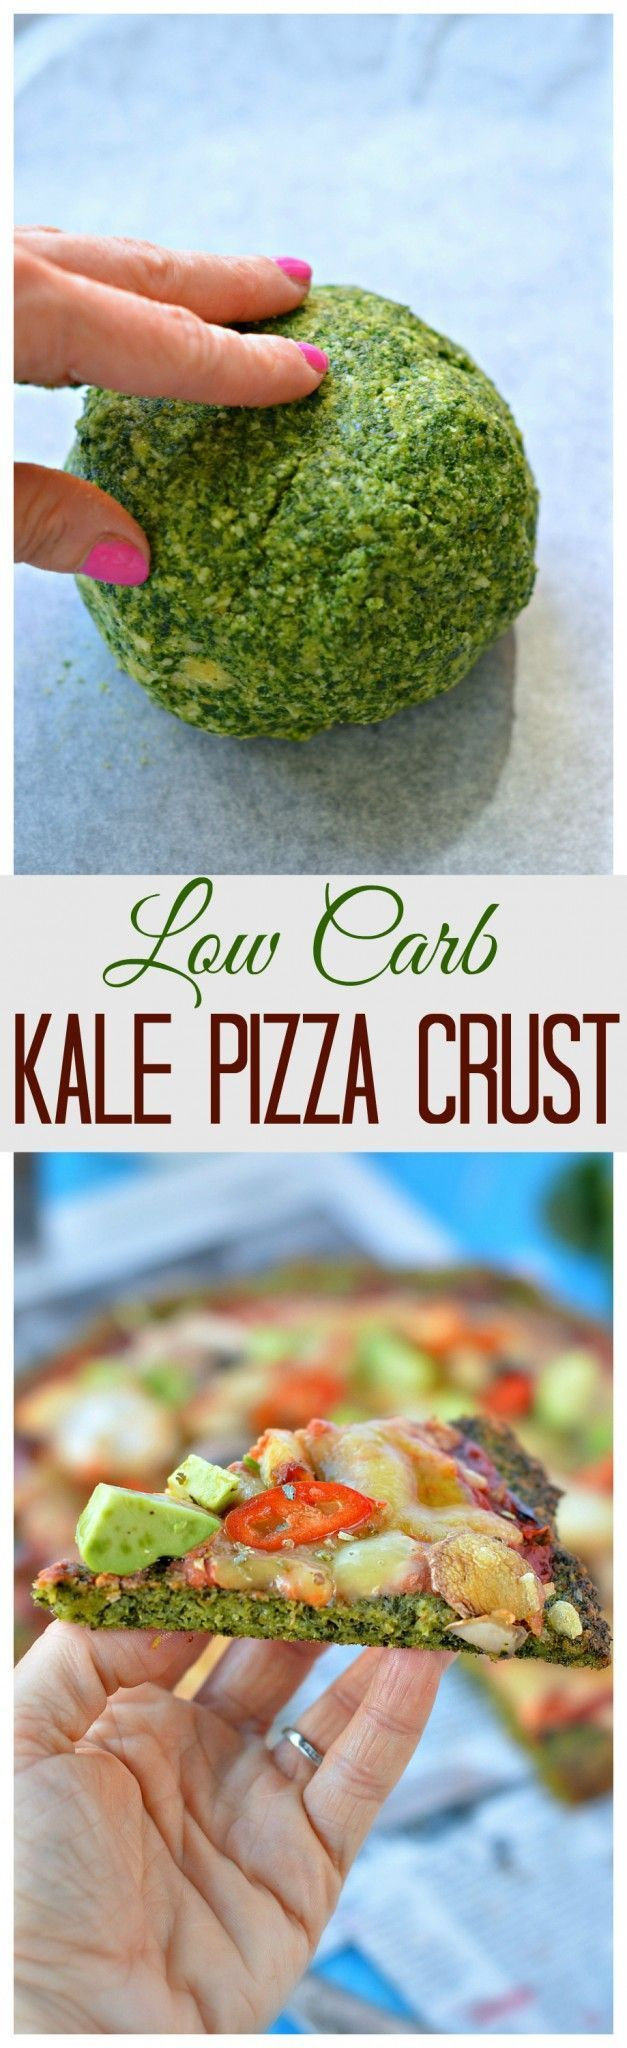 Healthy Kale Pizza Crust a great thanksgiving appetizer. Low carb pizza crust with kale | healthy recipe ideas (Low Ingredients Eggs)